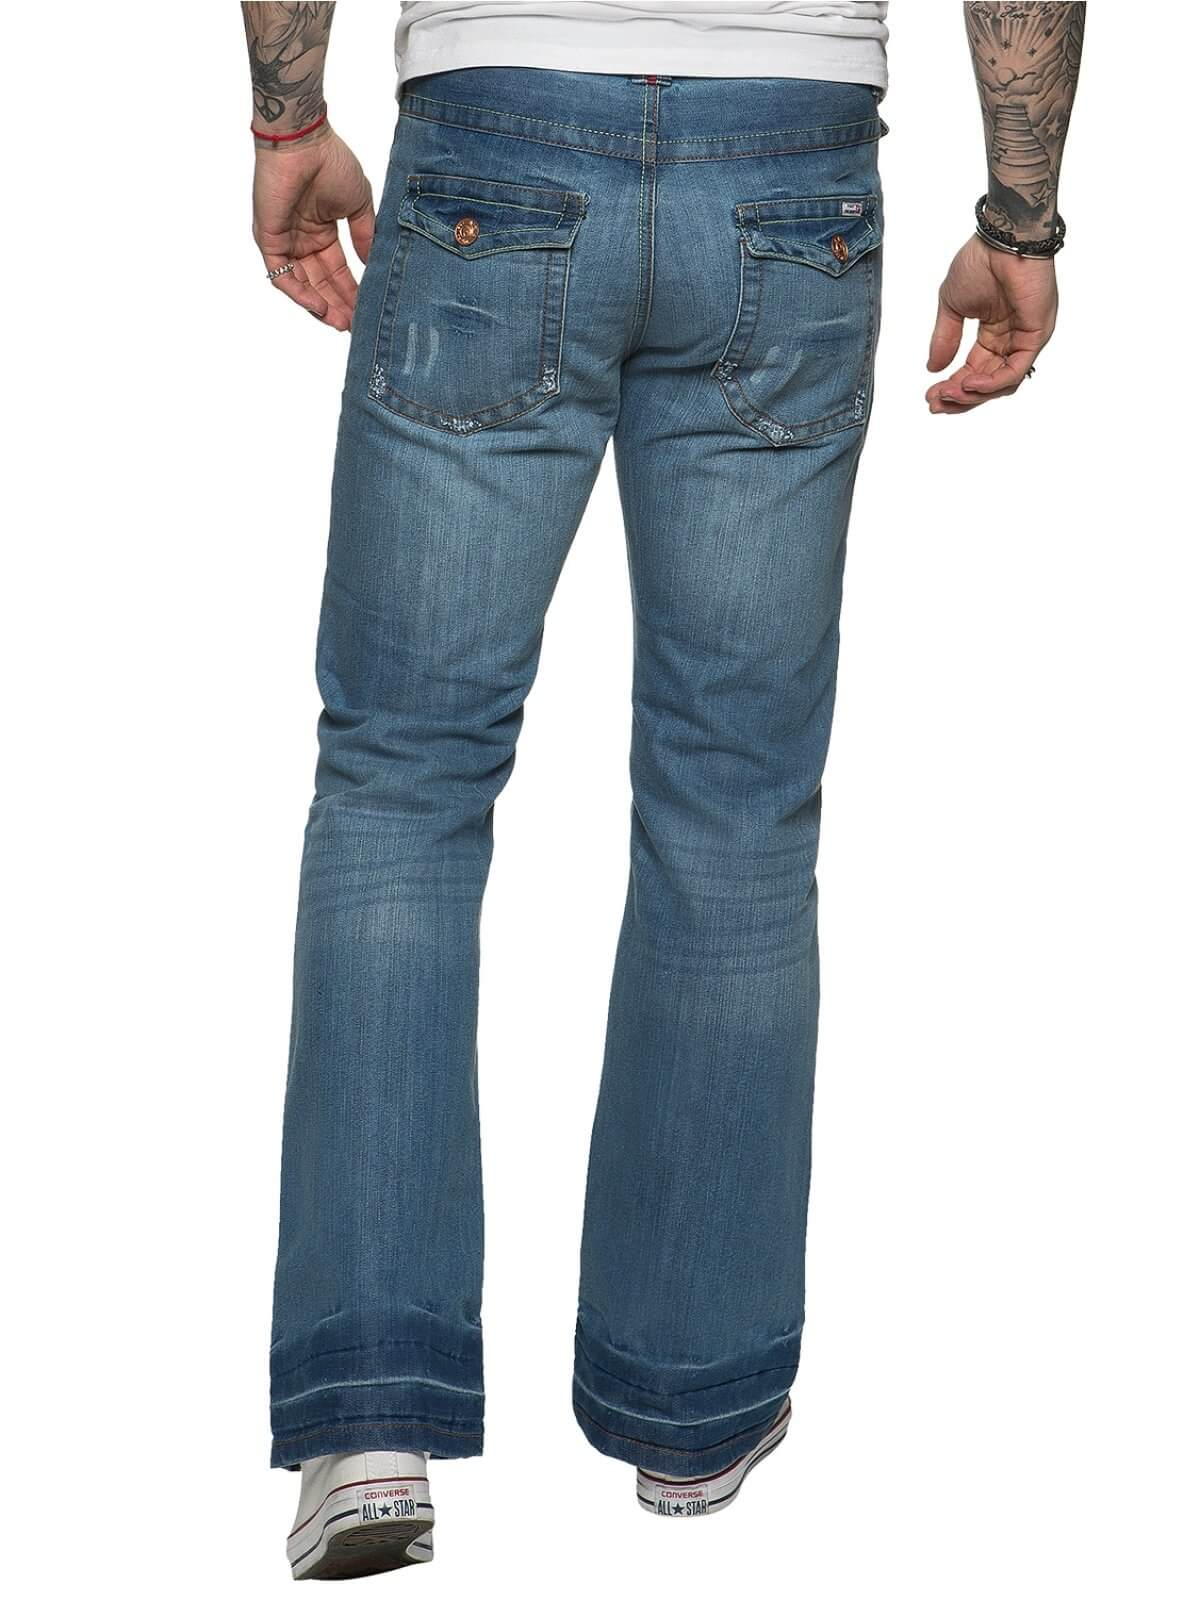 Men's Light Wash Boot Cut Denim Jeans A42 | APT Designer Menswear